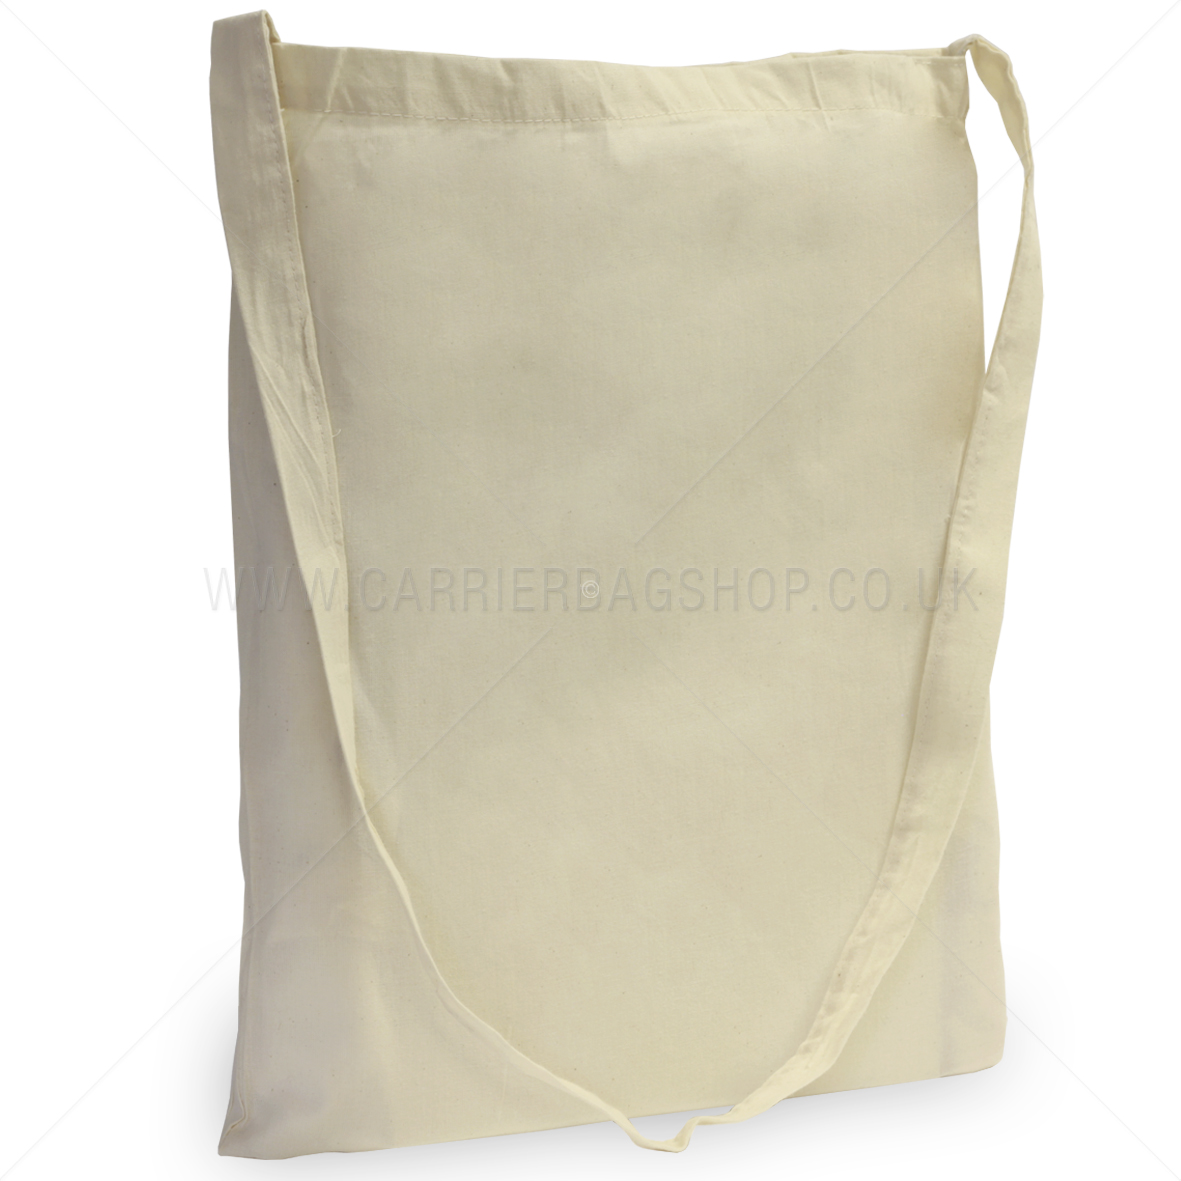 Natural Unbleached Cotton Sling Tote Bag from Carrier Bag Shop ...